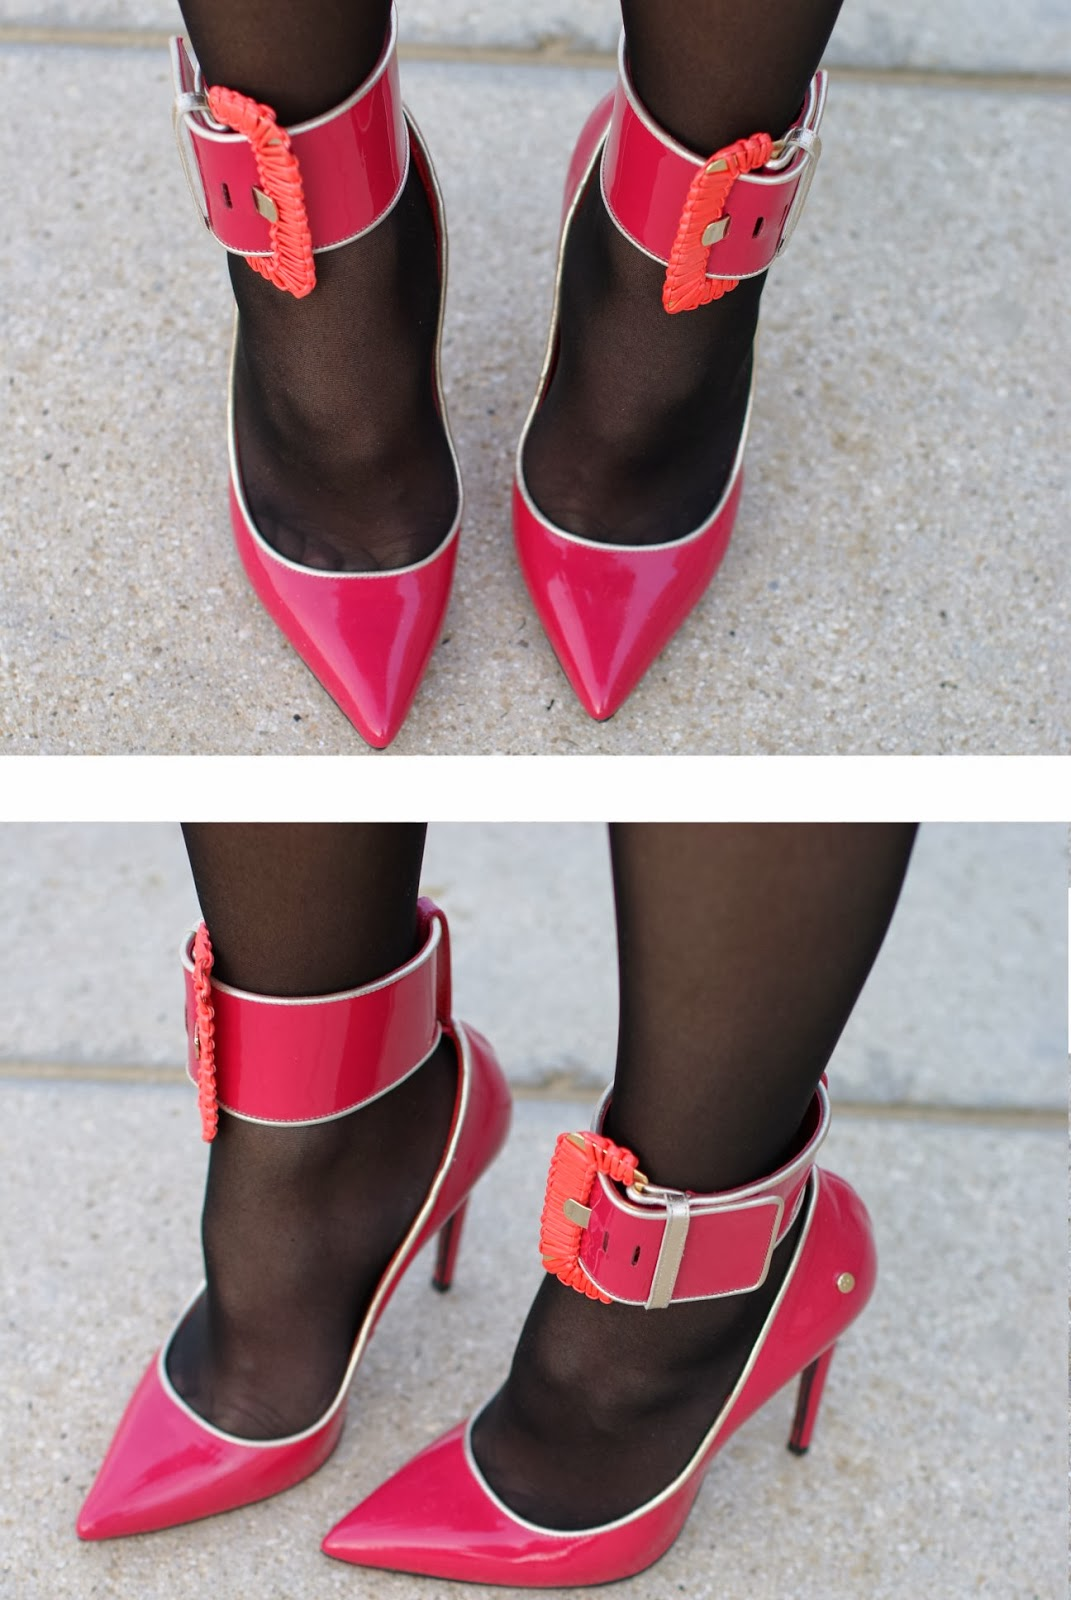 Cesare Paciotti fuchsia pumps, anklet stiletto pumps, Fashion and Cookies, fashion blogger